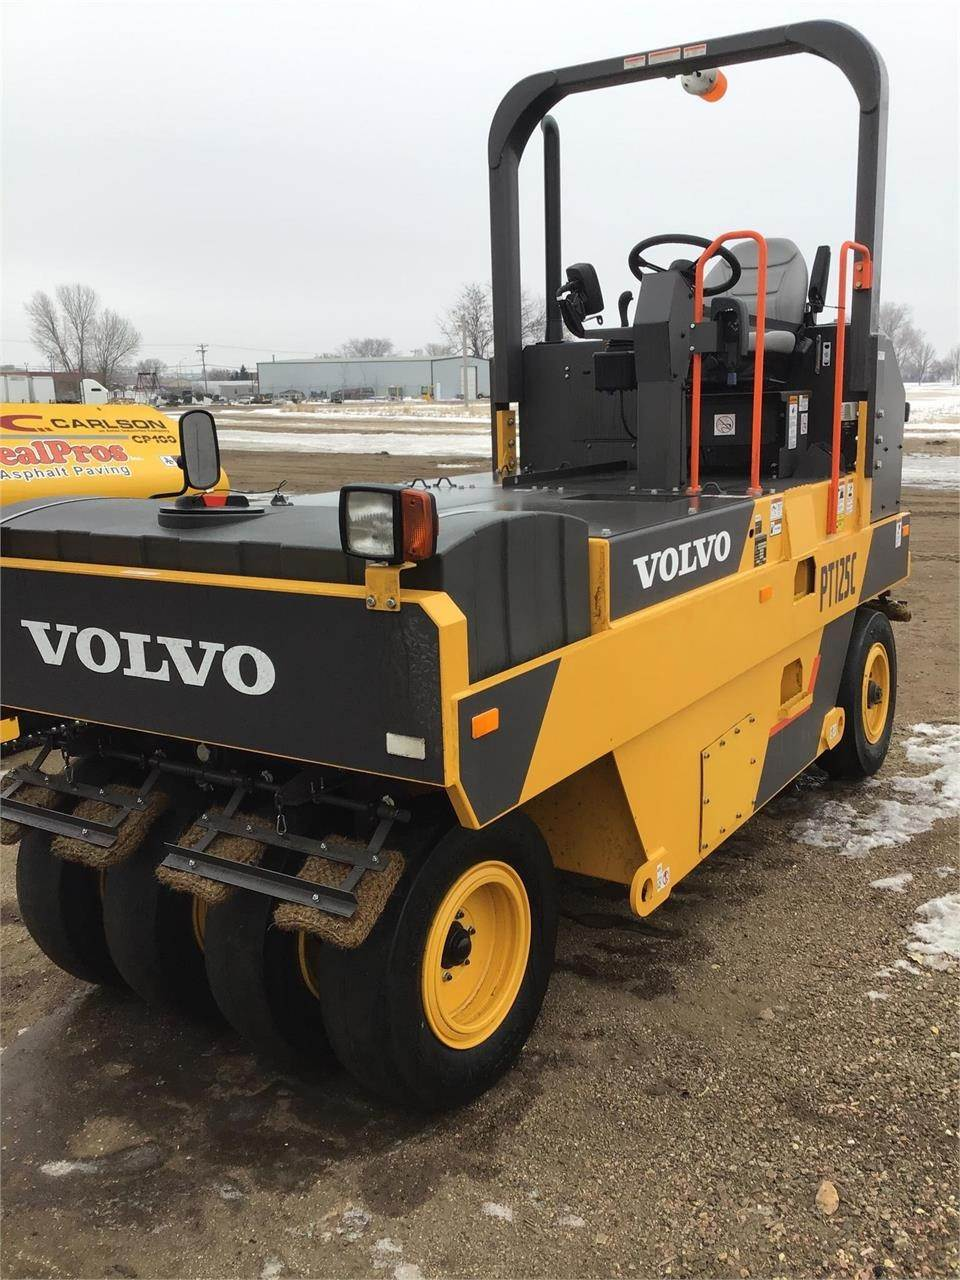 Volvo PT125C, Pneumatic tired rollers, Construction Equipment